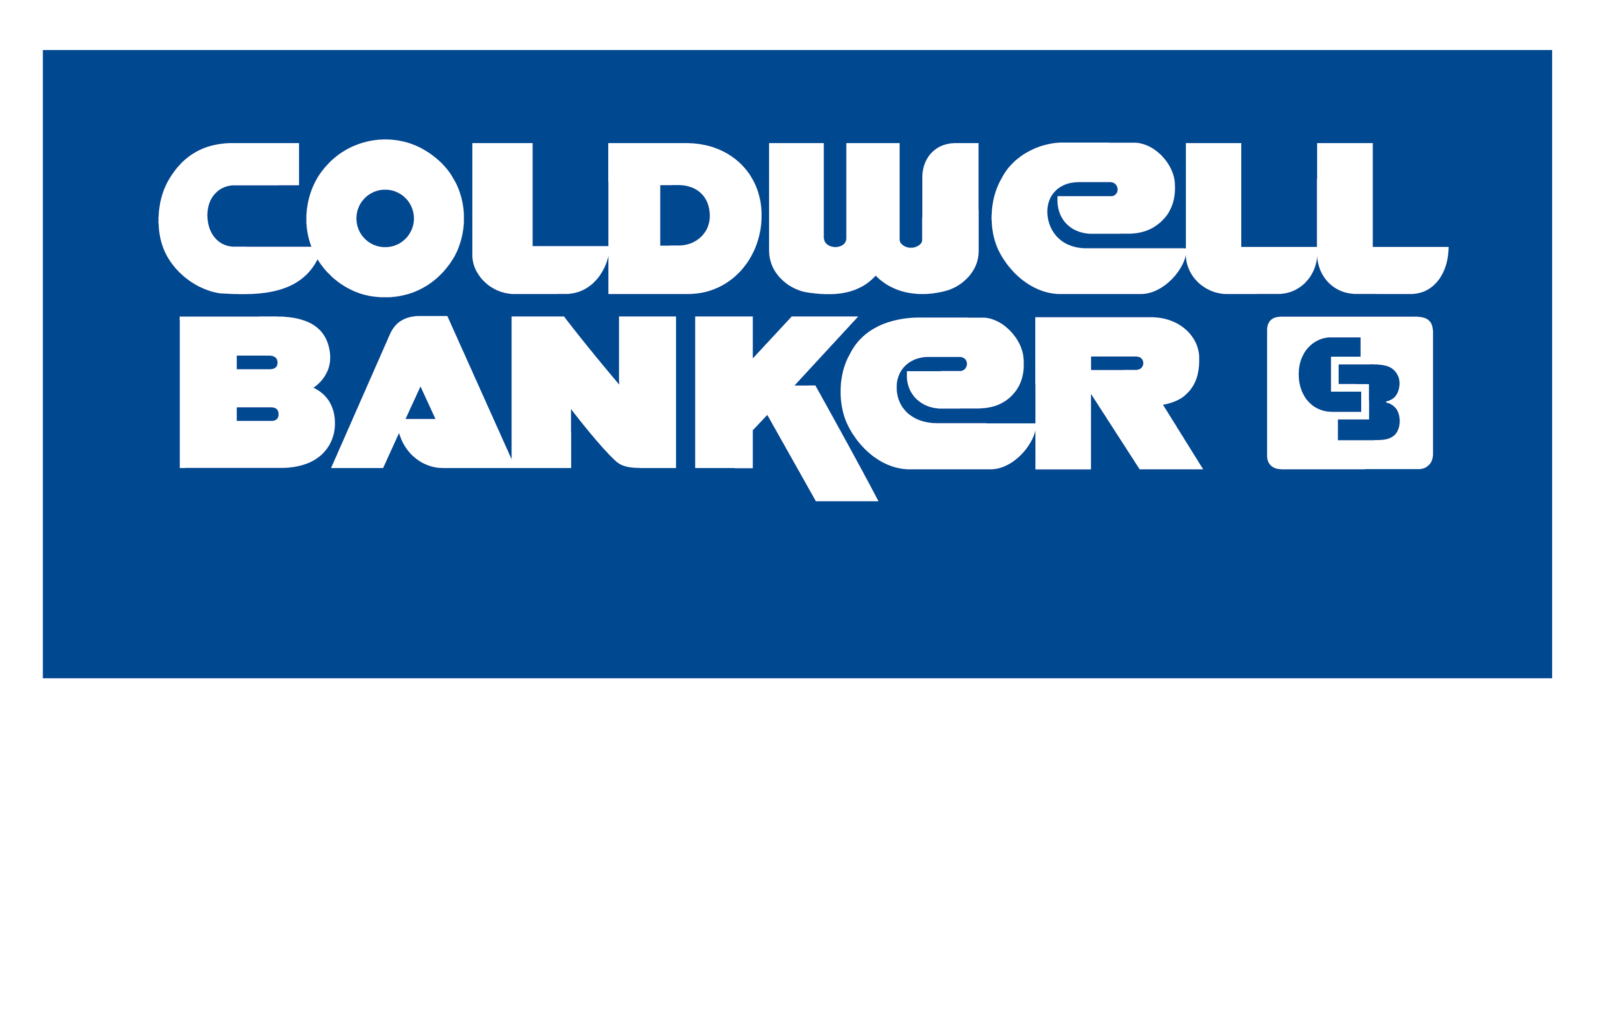 Coldwell Banker Marquise Realty